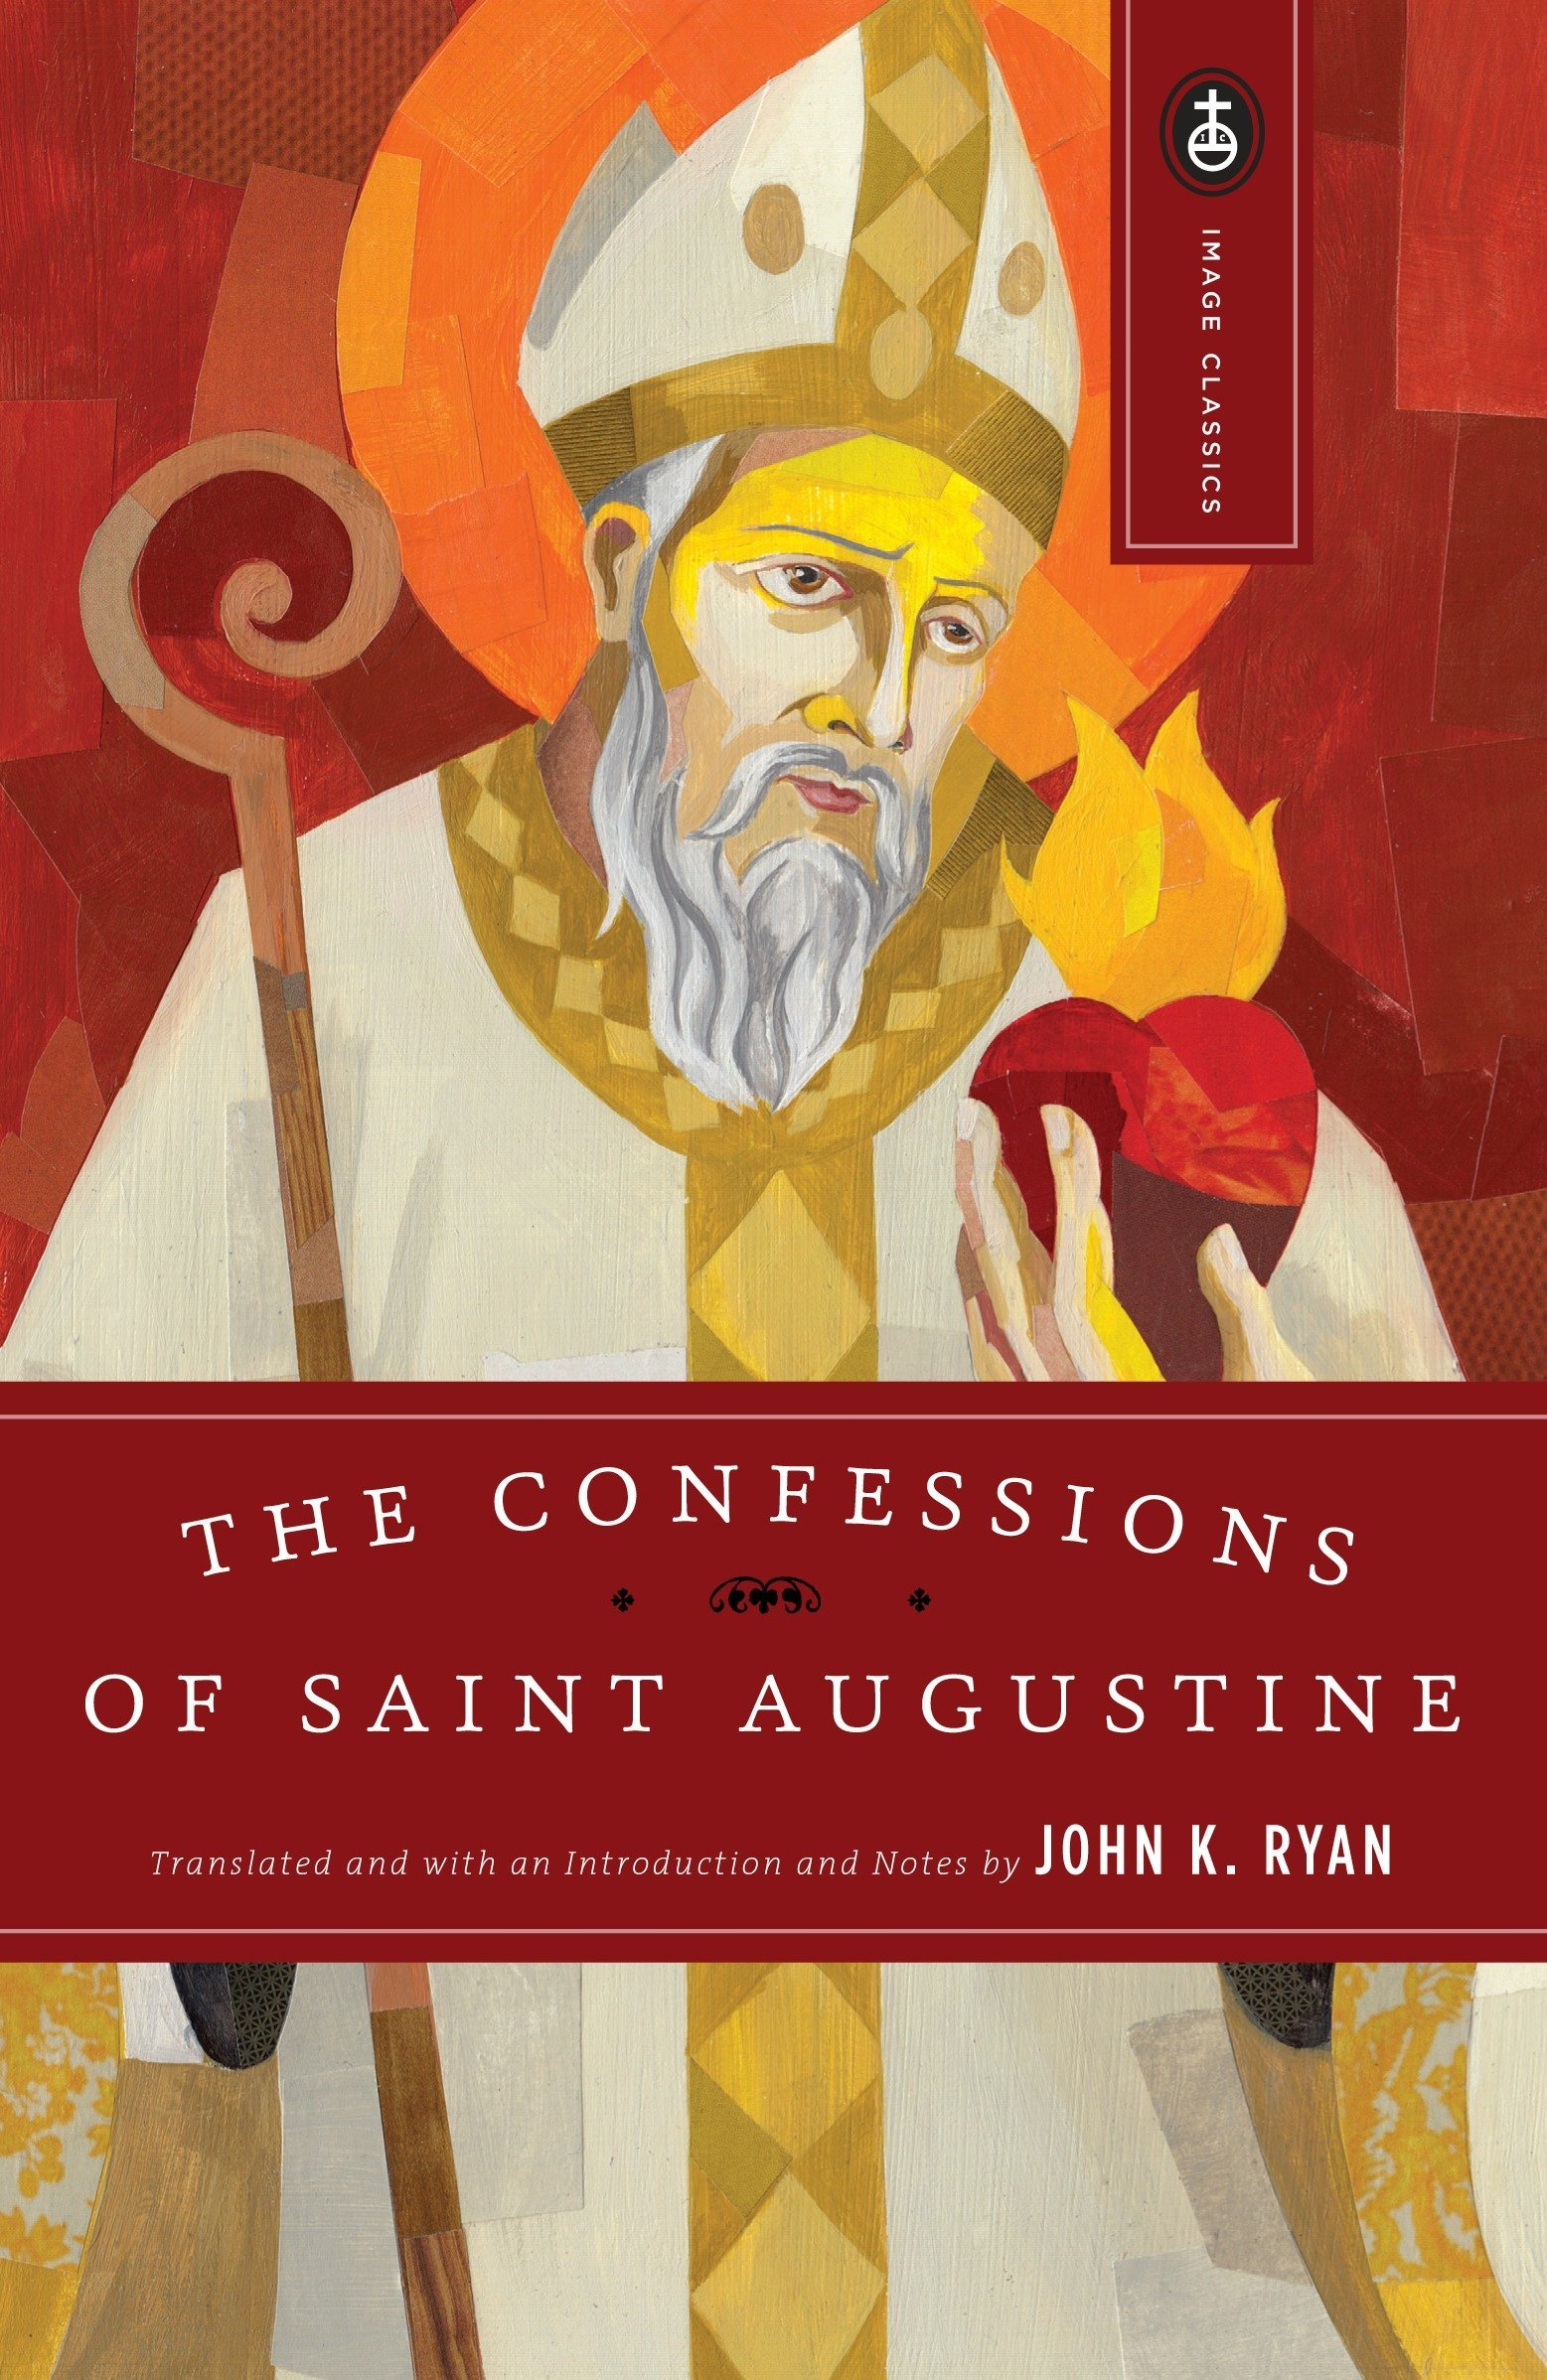 The Confessions of Saint Augustine (Image Classics) PDF